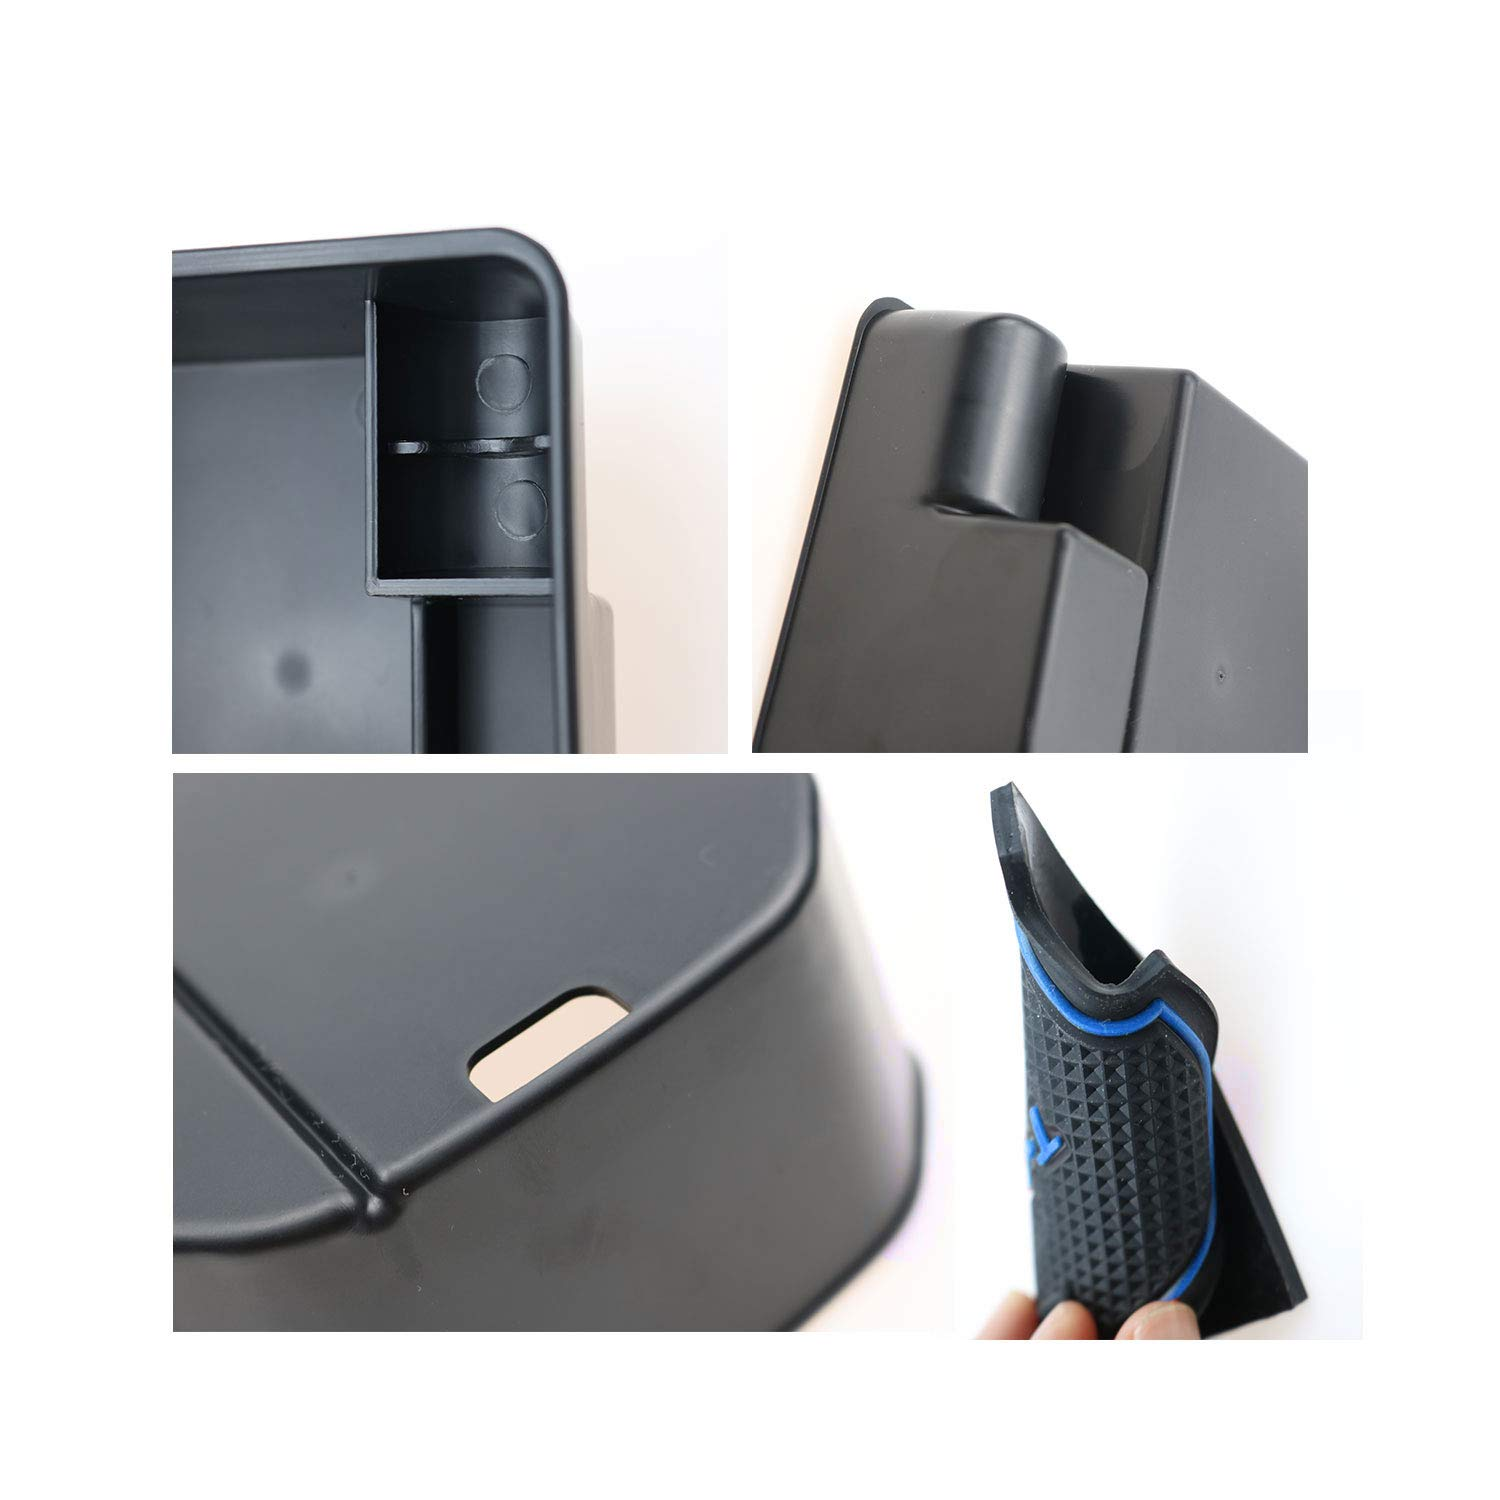 YEE PIN Centre Console Organizer Tray Armrest Tray Compatible with T Roc SUV 2018 2019 2020 Secondary Storage Box Insert Glove Compartment Car Accessories